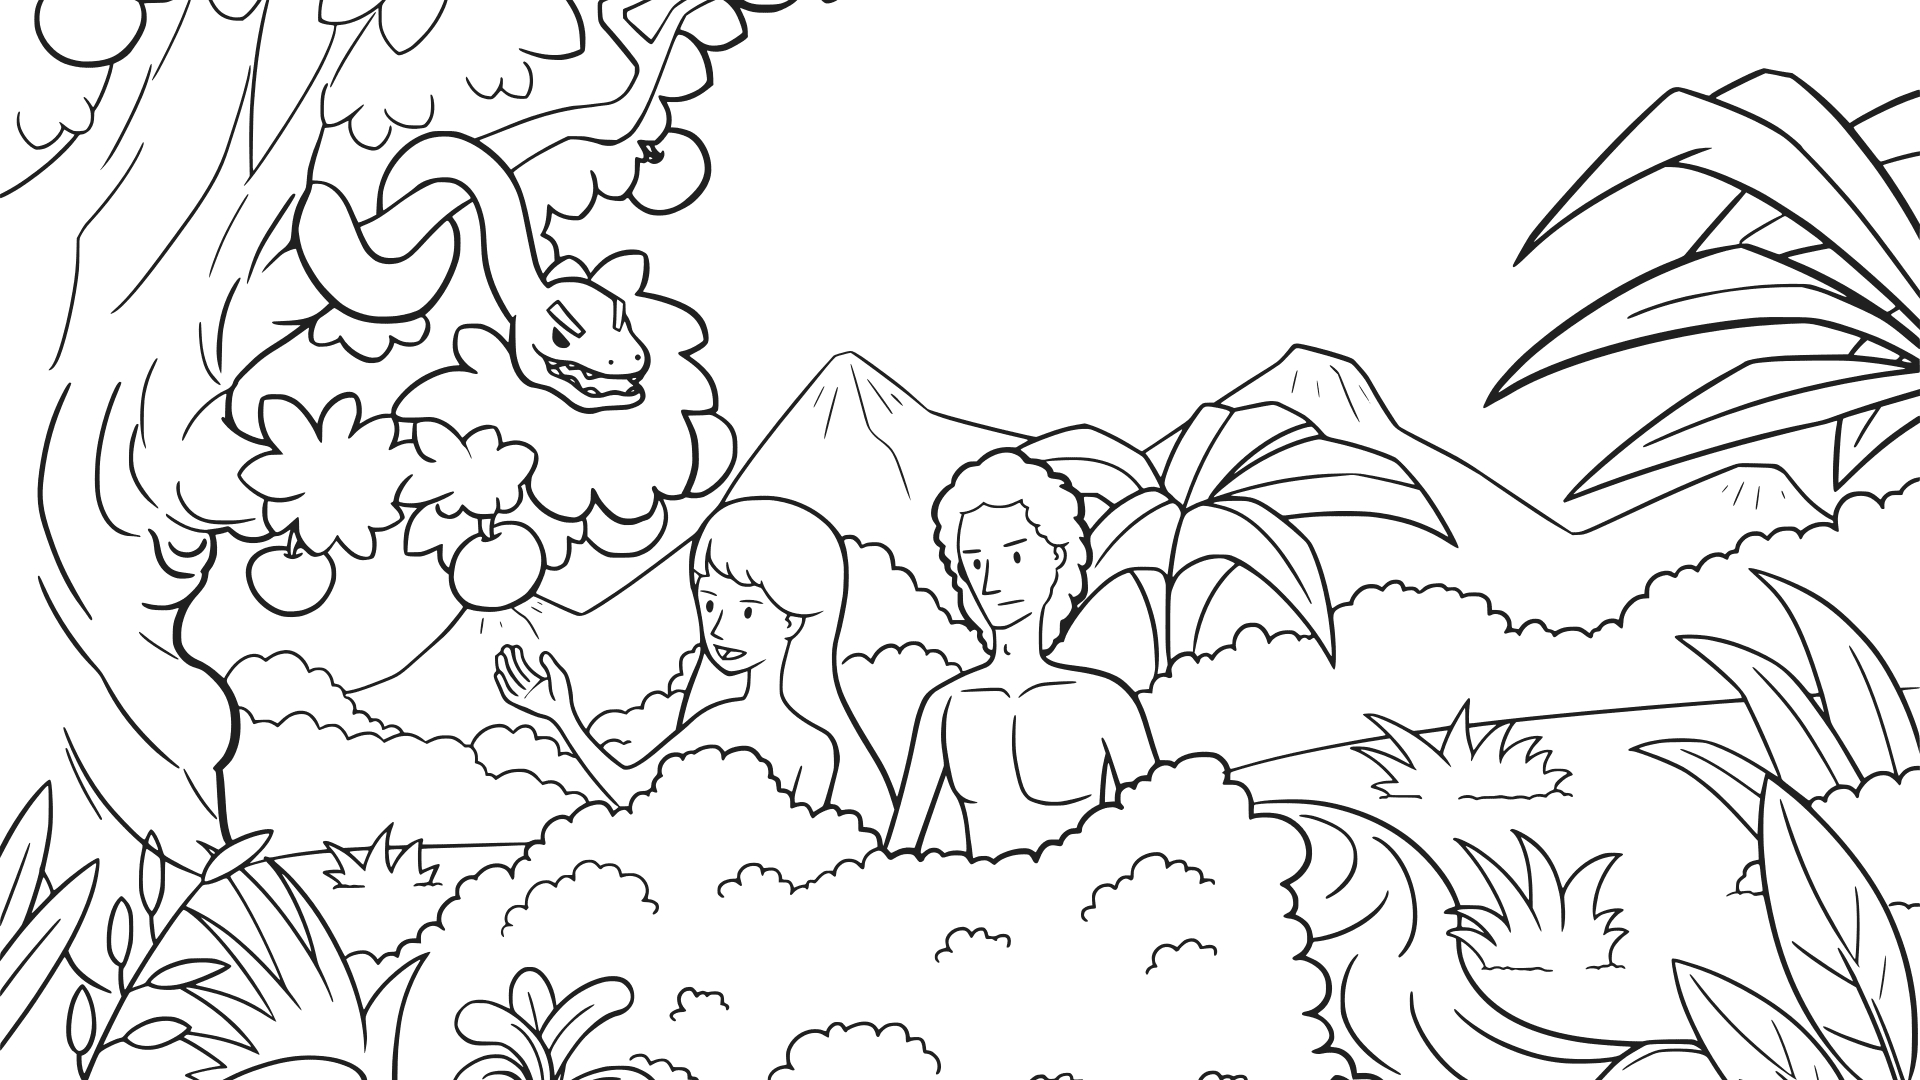 Adam and Eve Were Called to Rule Creation Coloring Pages Free Collection Of And Eve Coloring Pages Coloring Pages Download